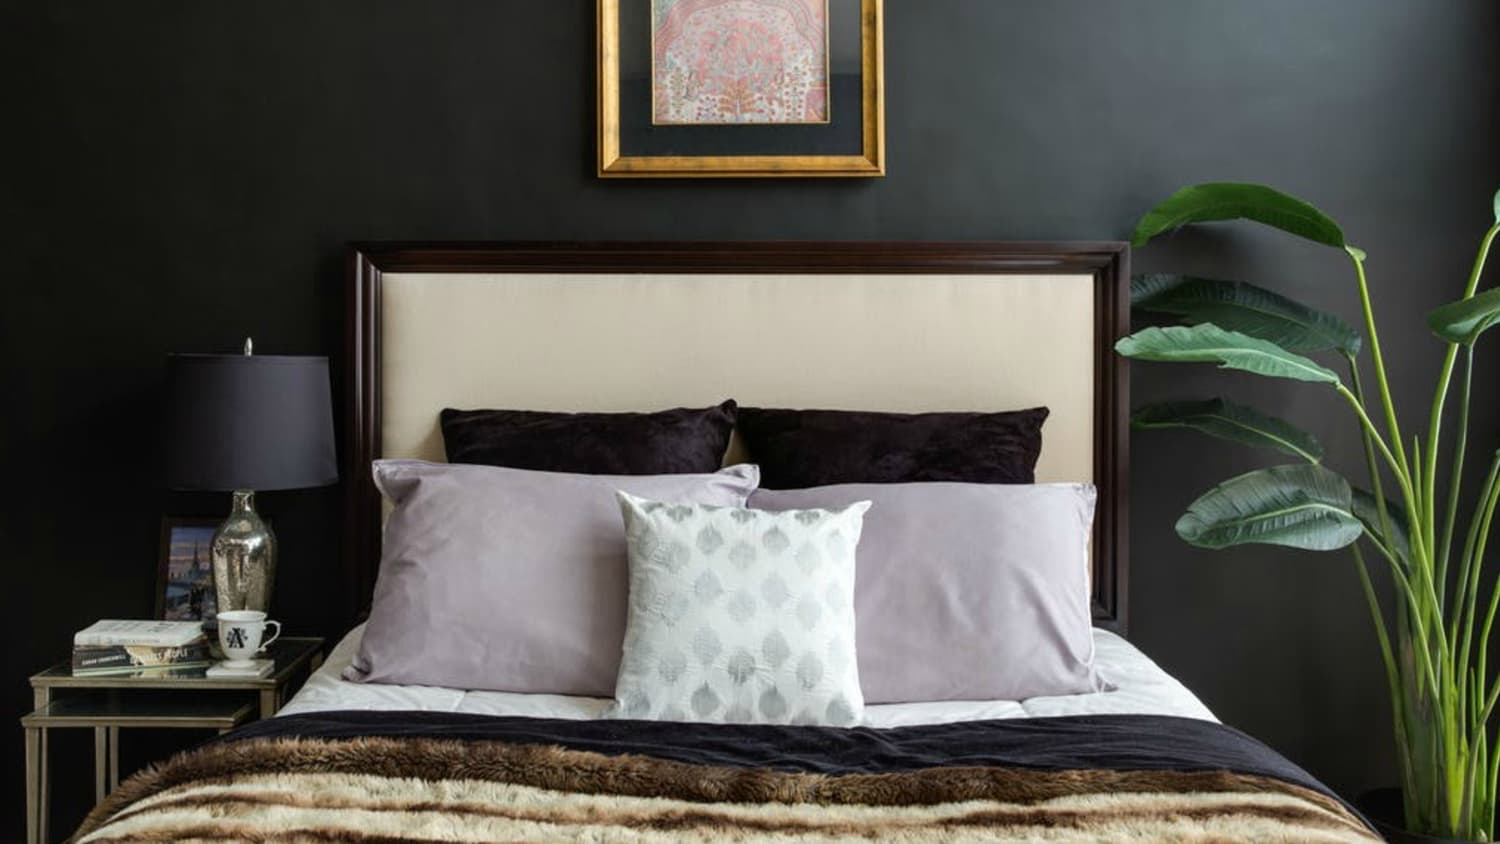 10 ideas for how to style your bed